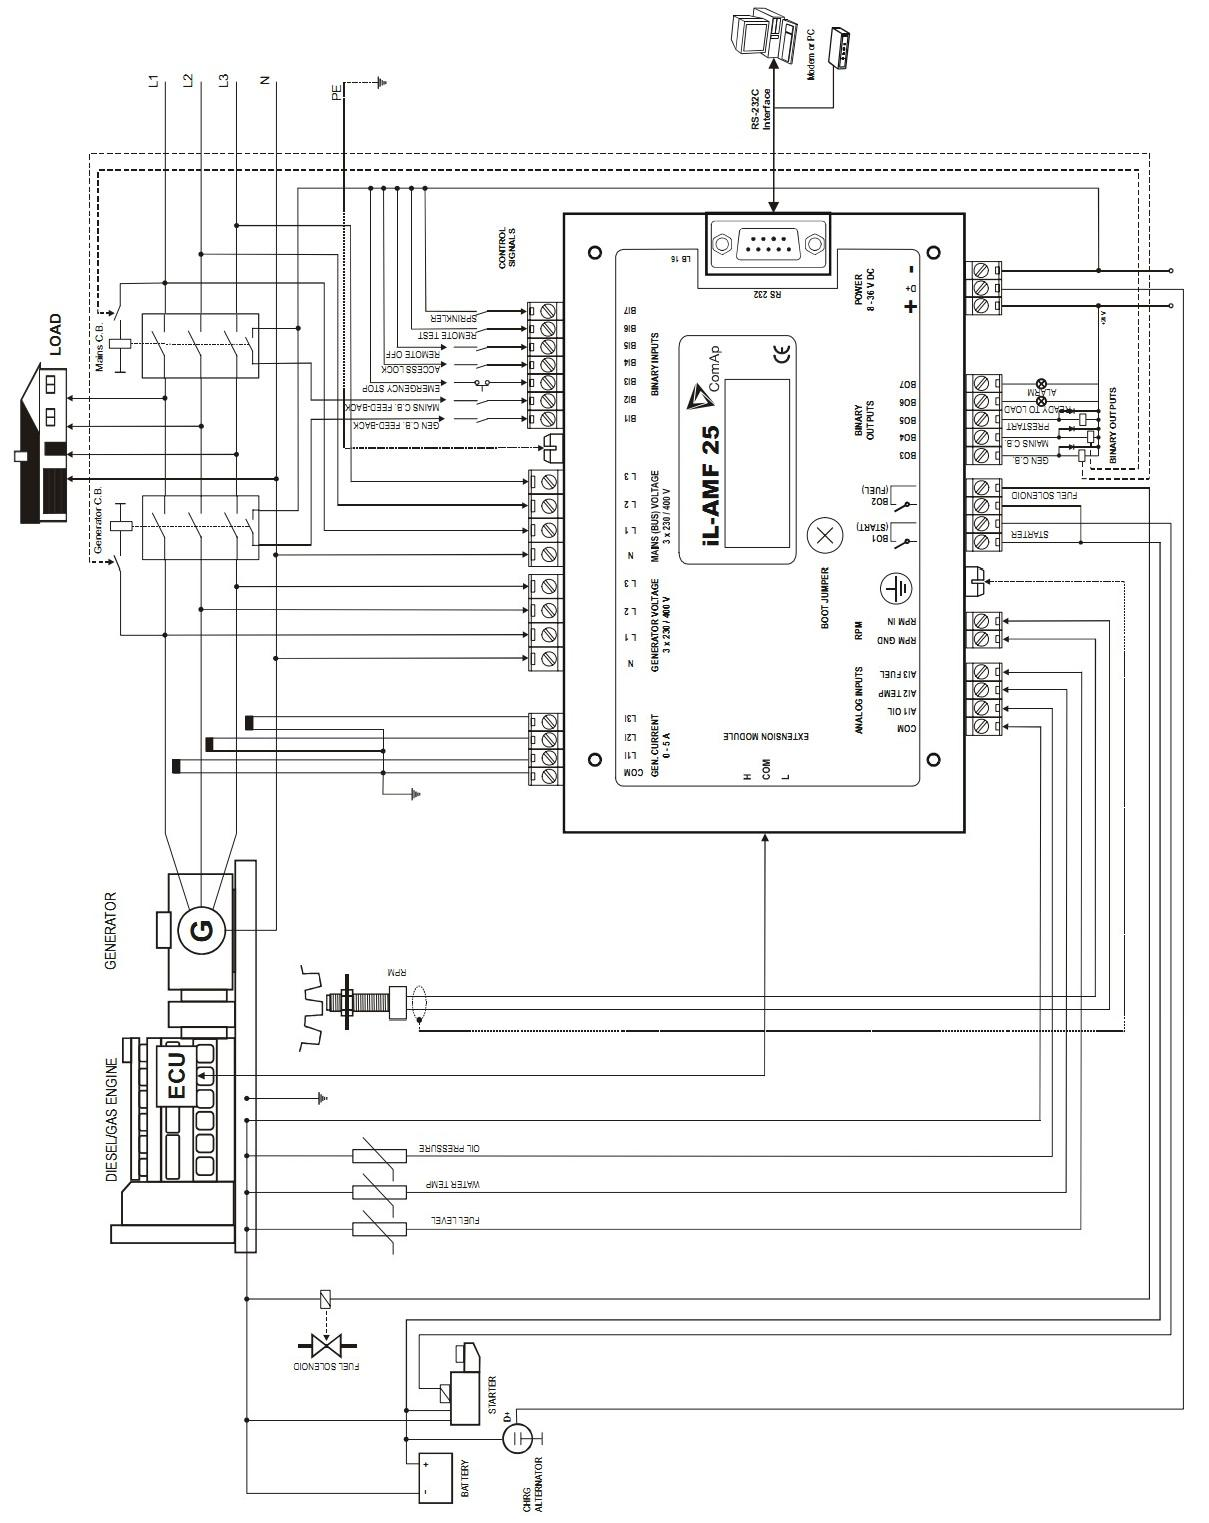 201210228323863 mx341 avr wiring diagram mx341 voltage regulator diagram \u2022 wiring grundfos pmu 2000 wiring diagram at creativeand.co